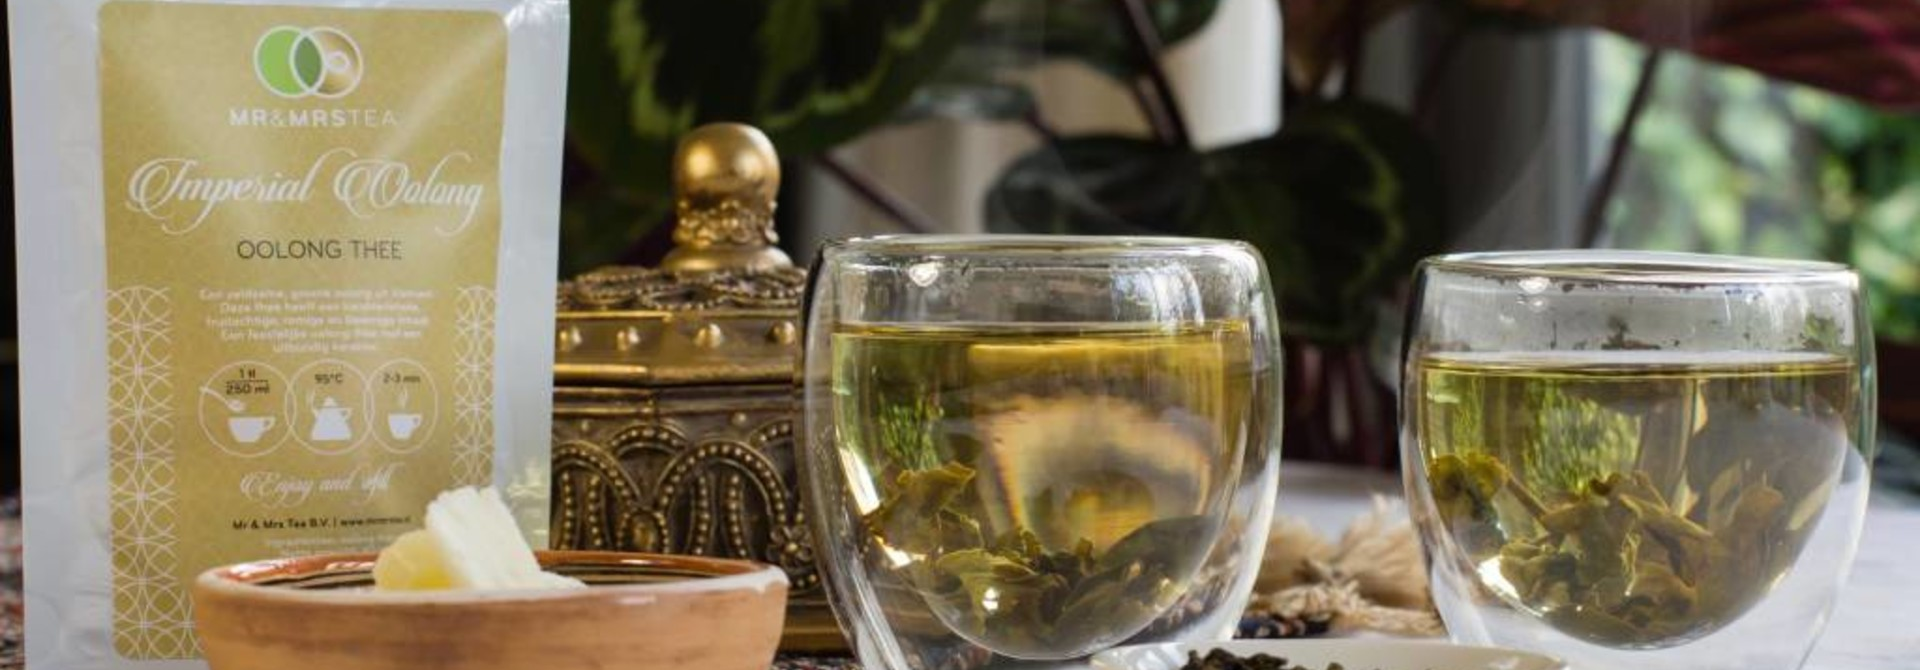 Vietnam Imperial Oolong - Oolong thee